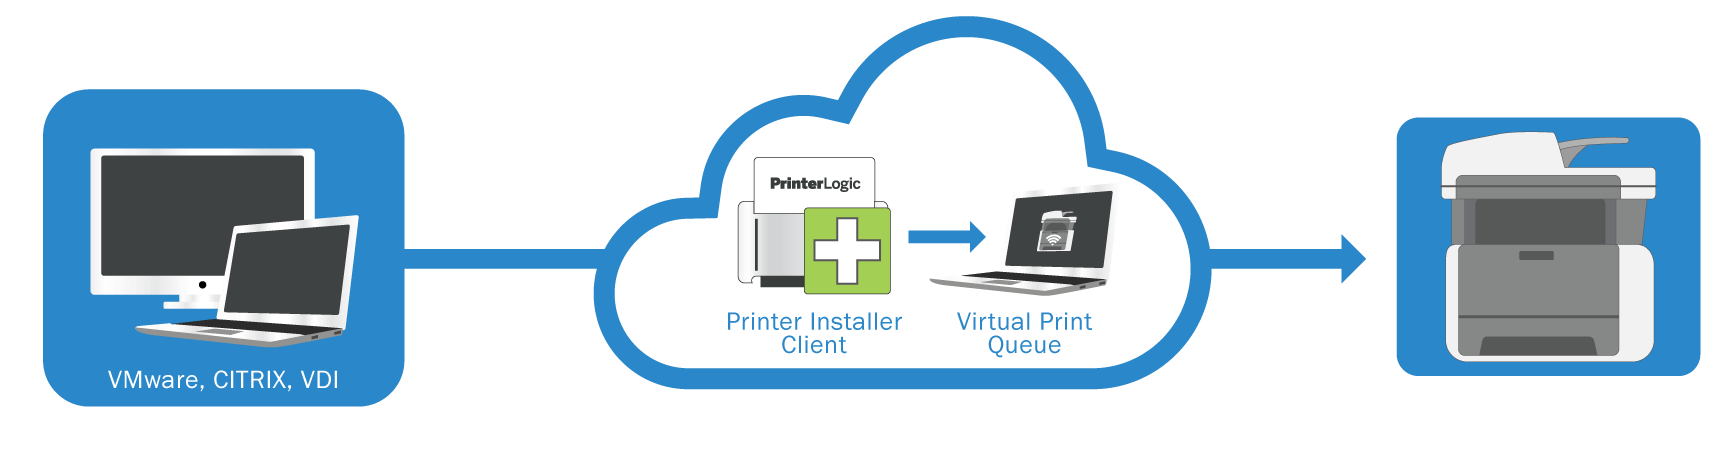 printing with citrix